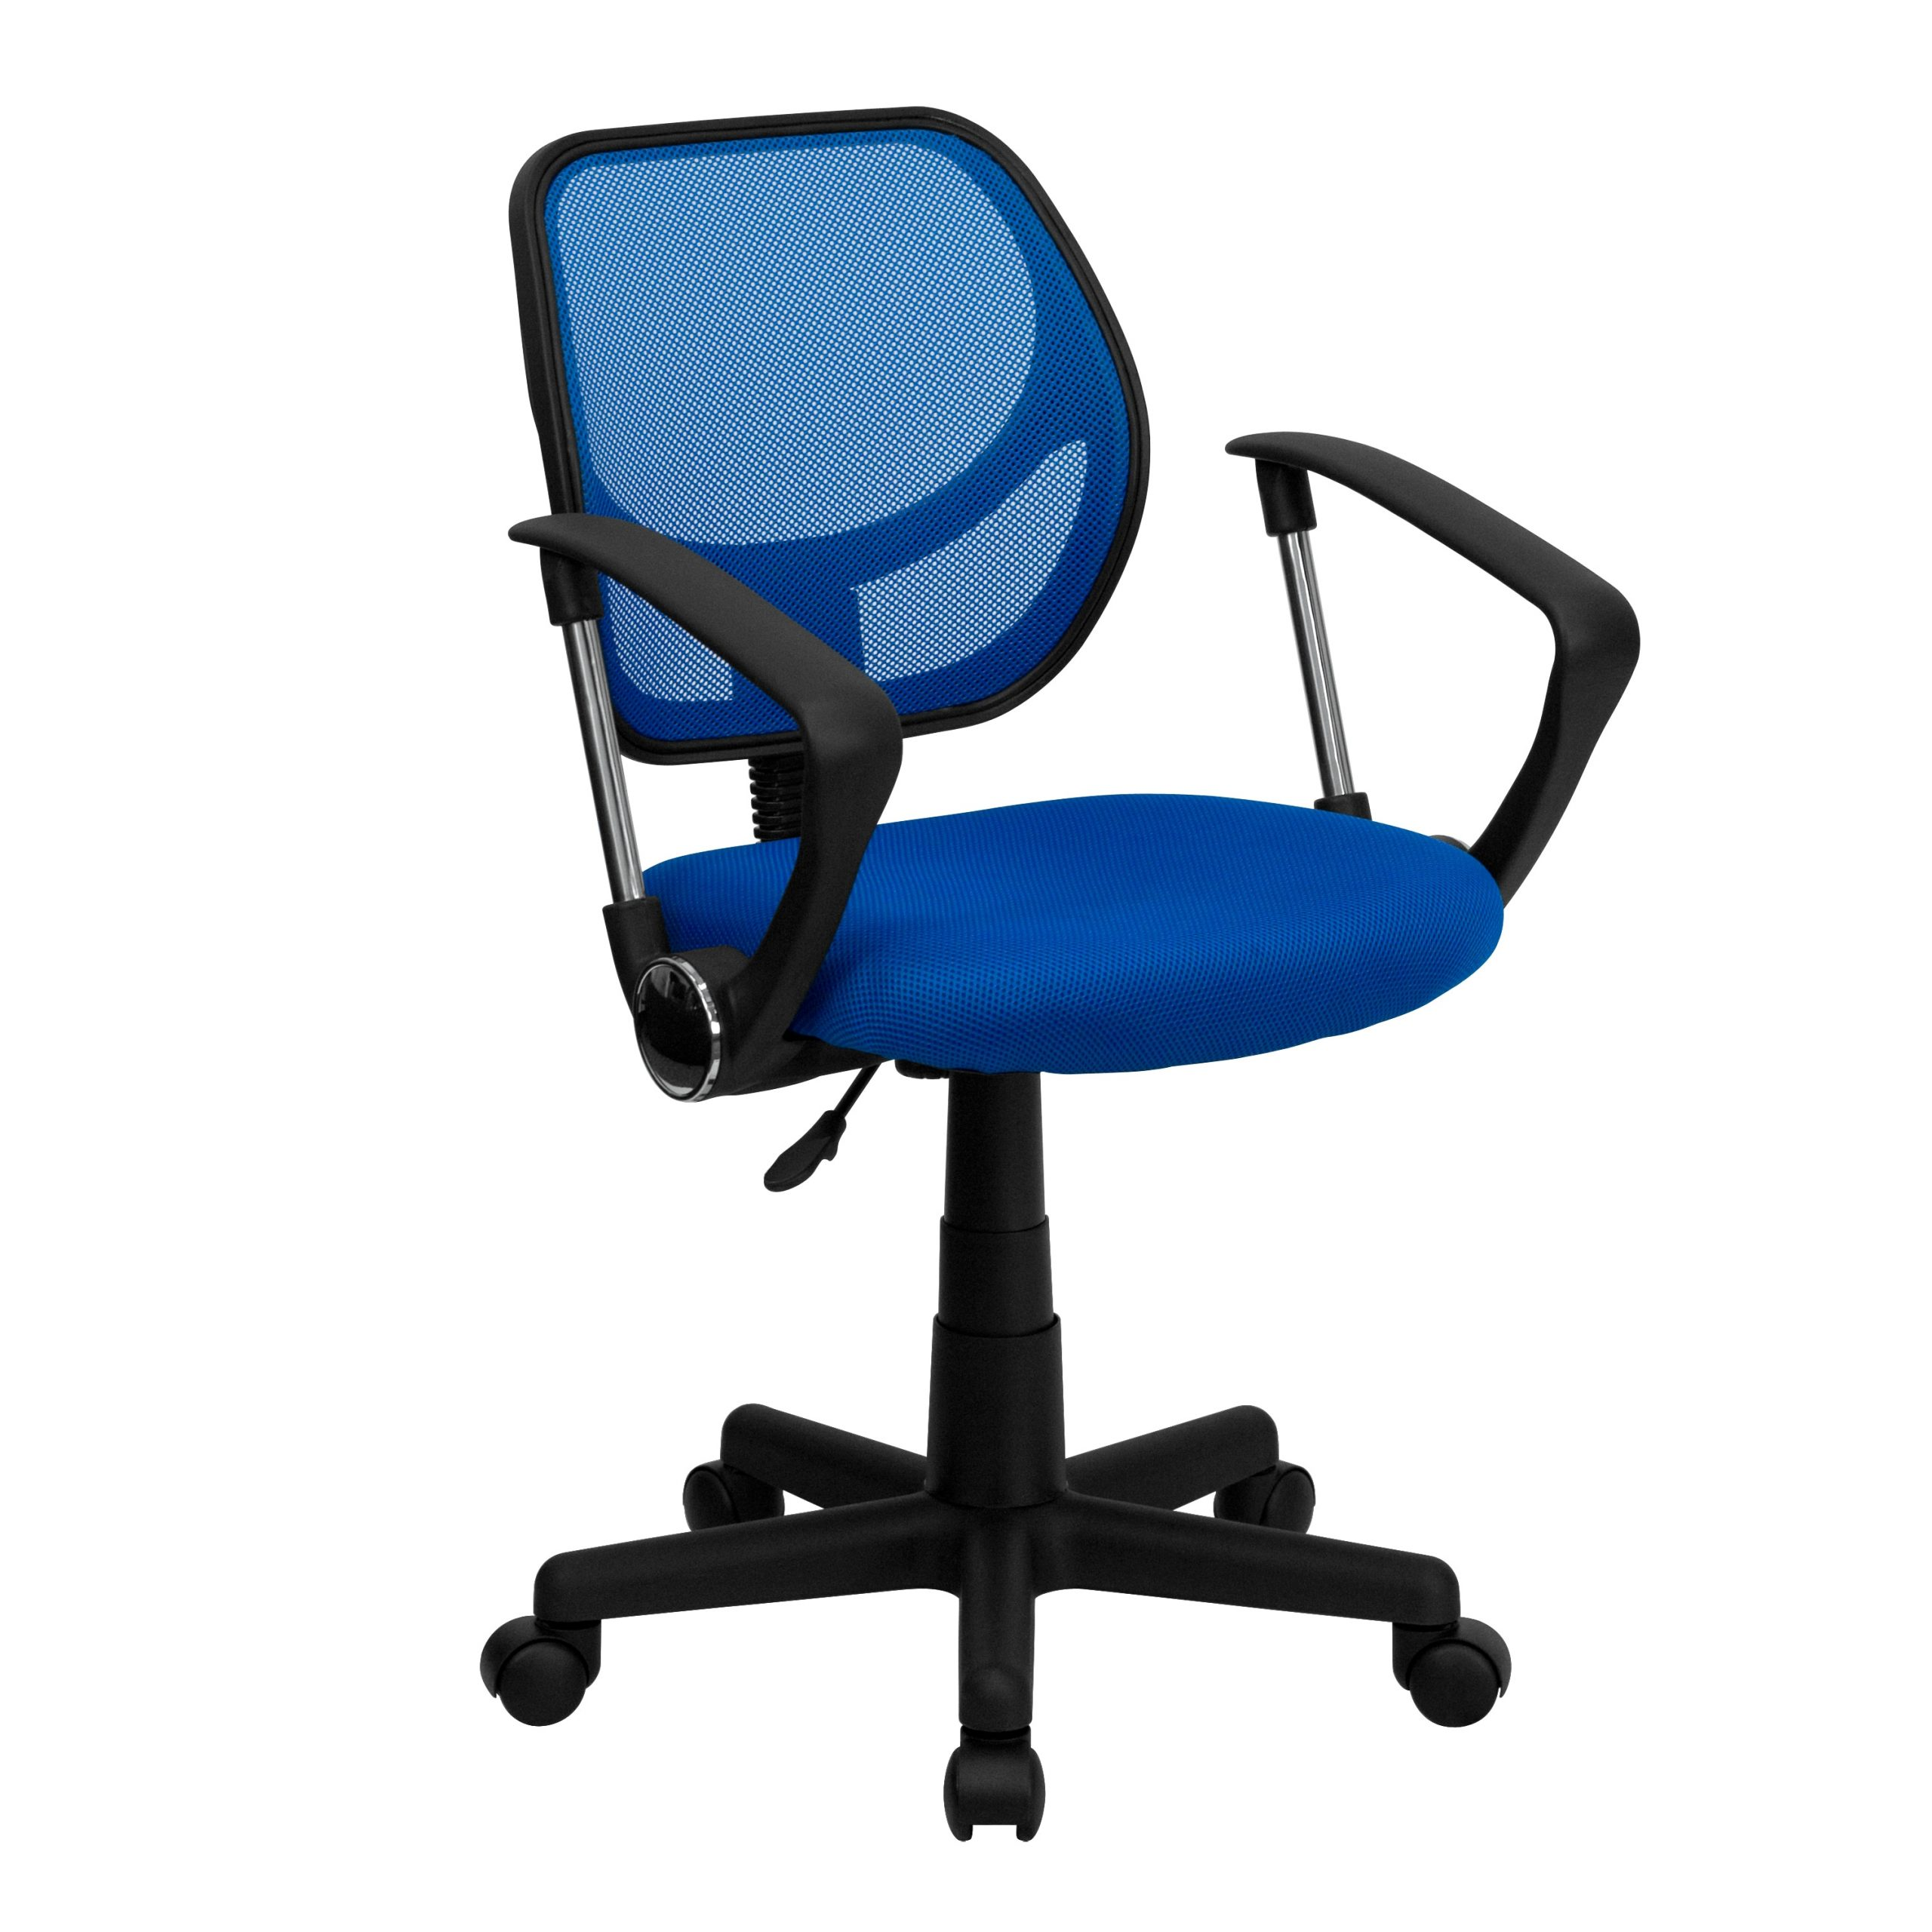 ventilated office chair